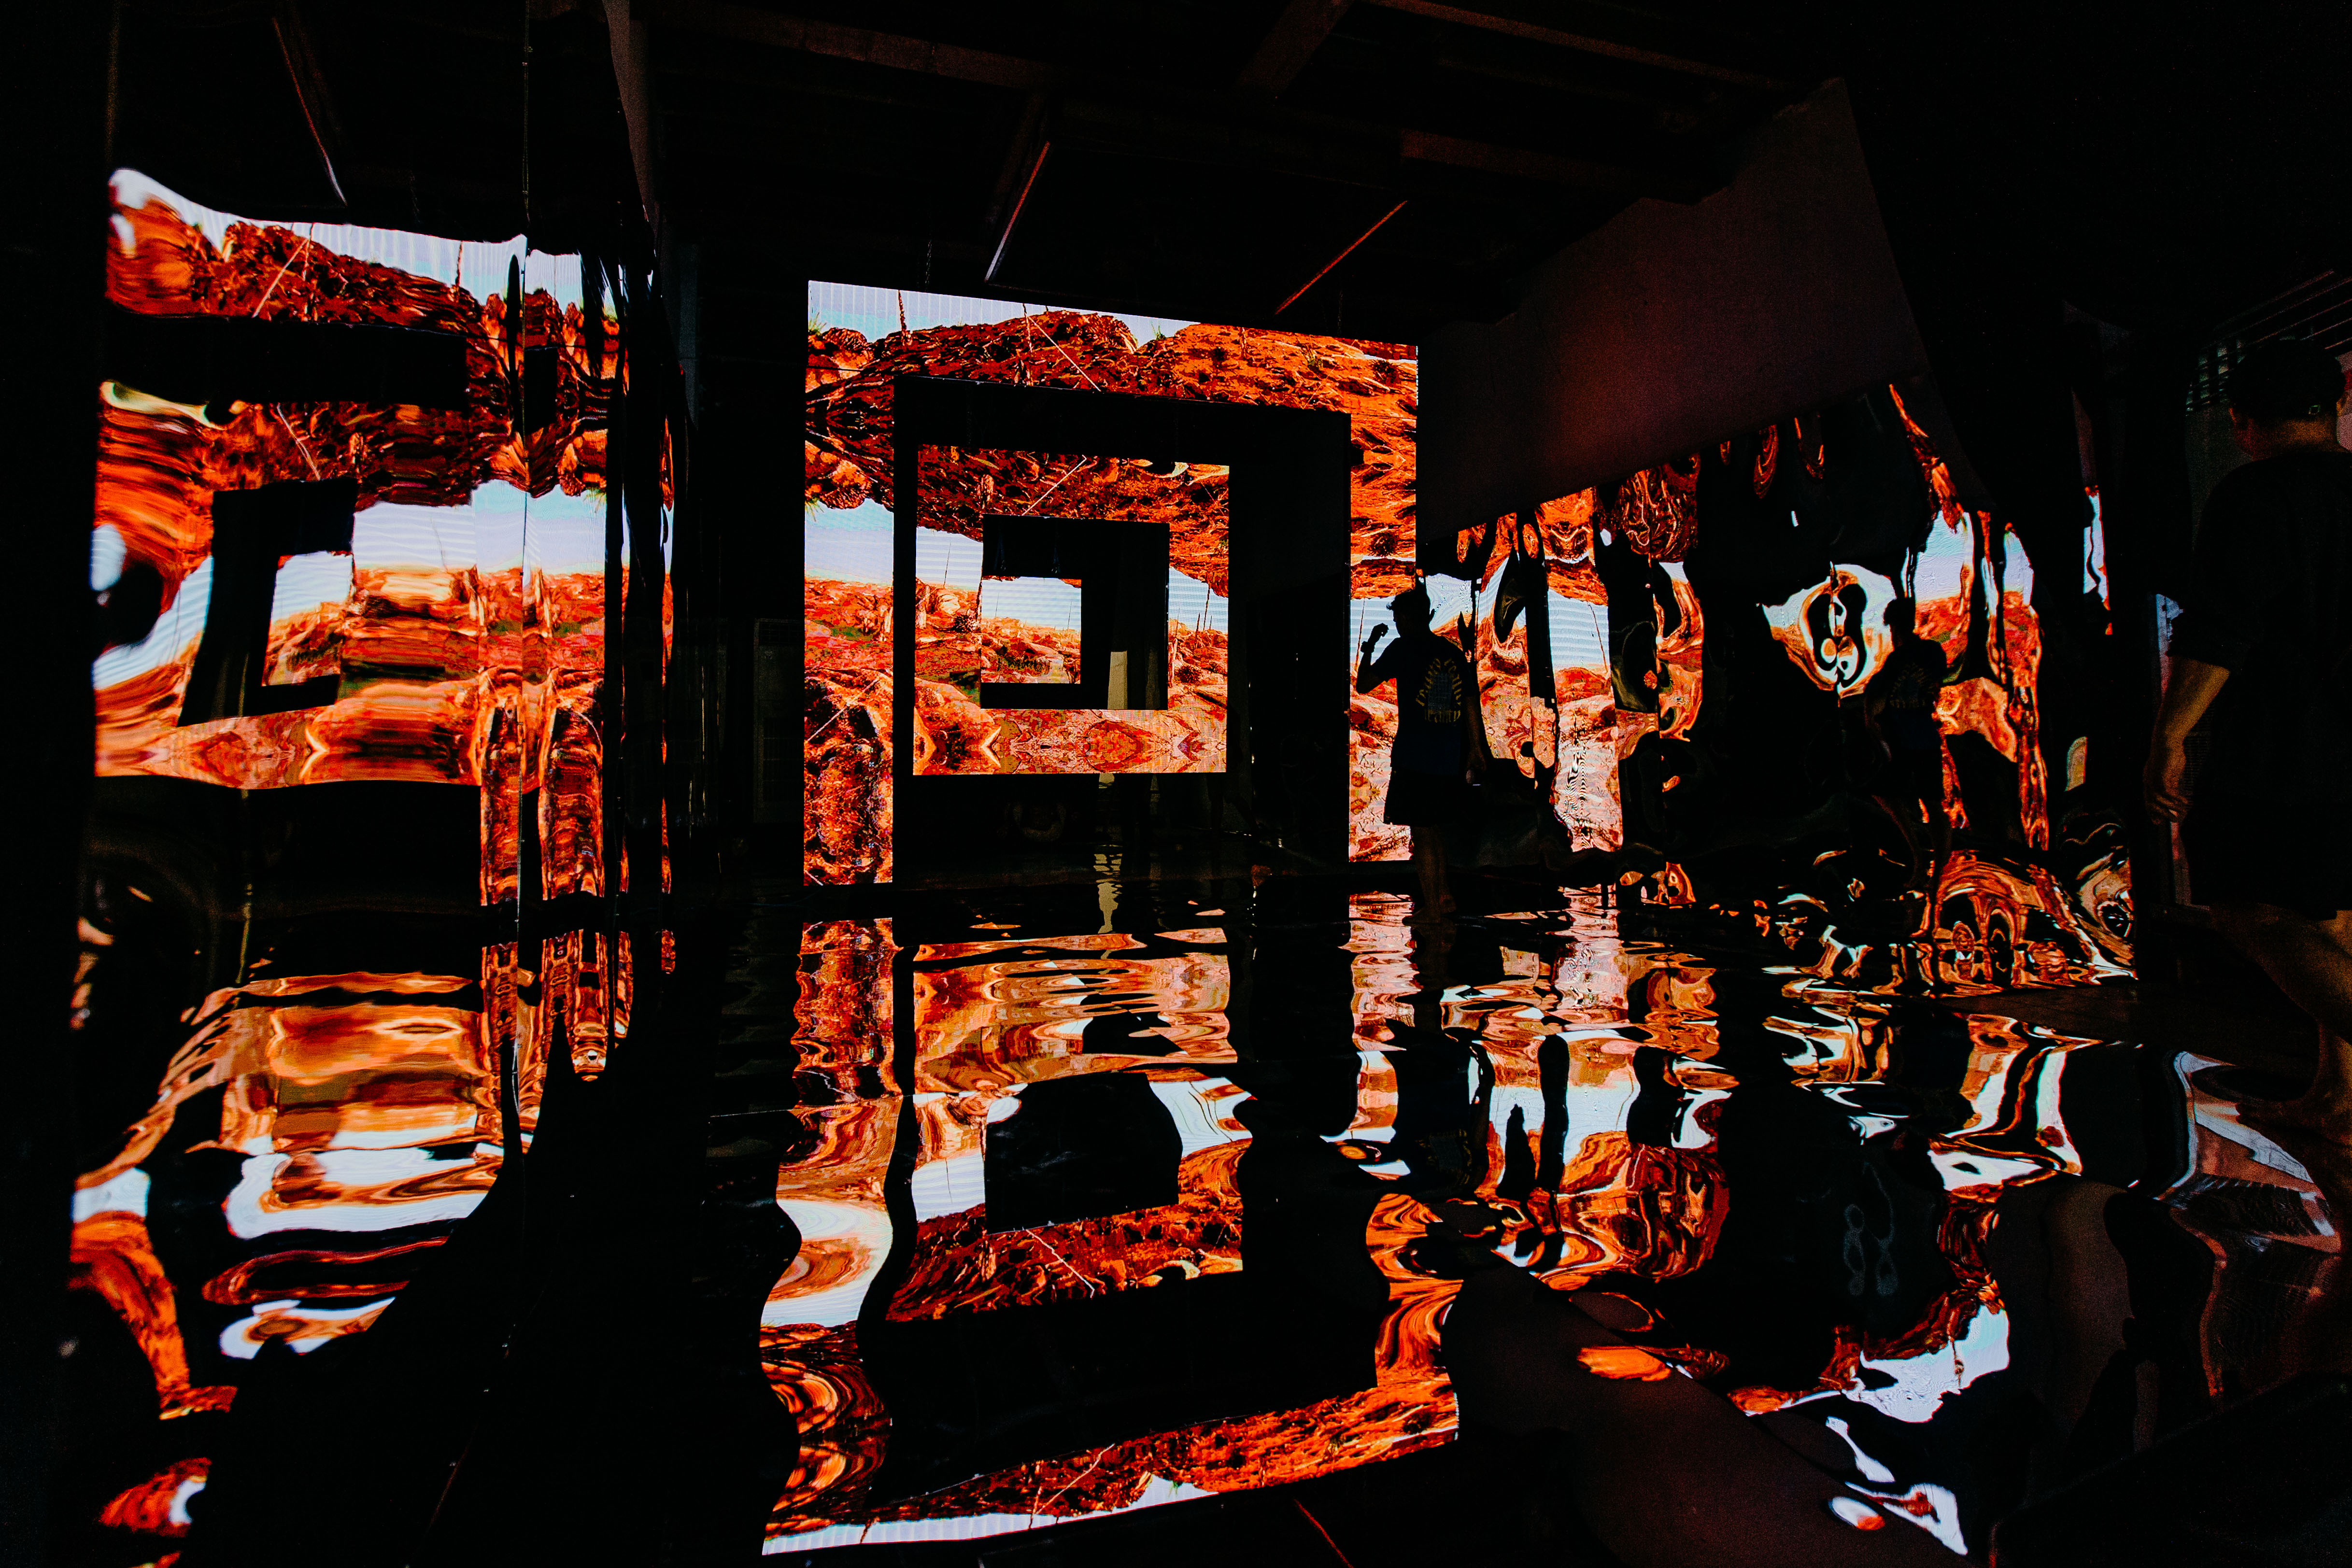 Interactive light exhibition where art and science merged